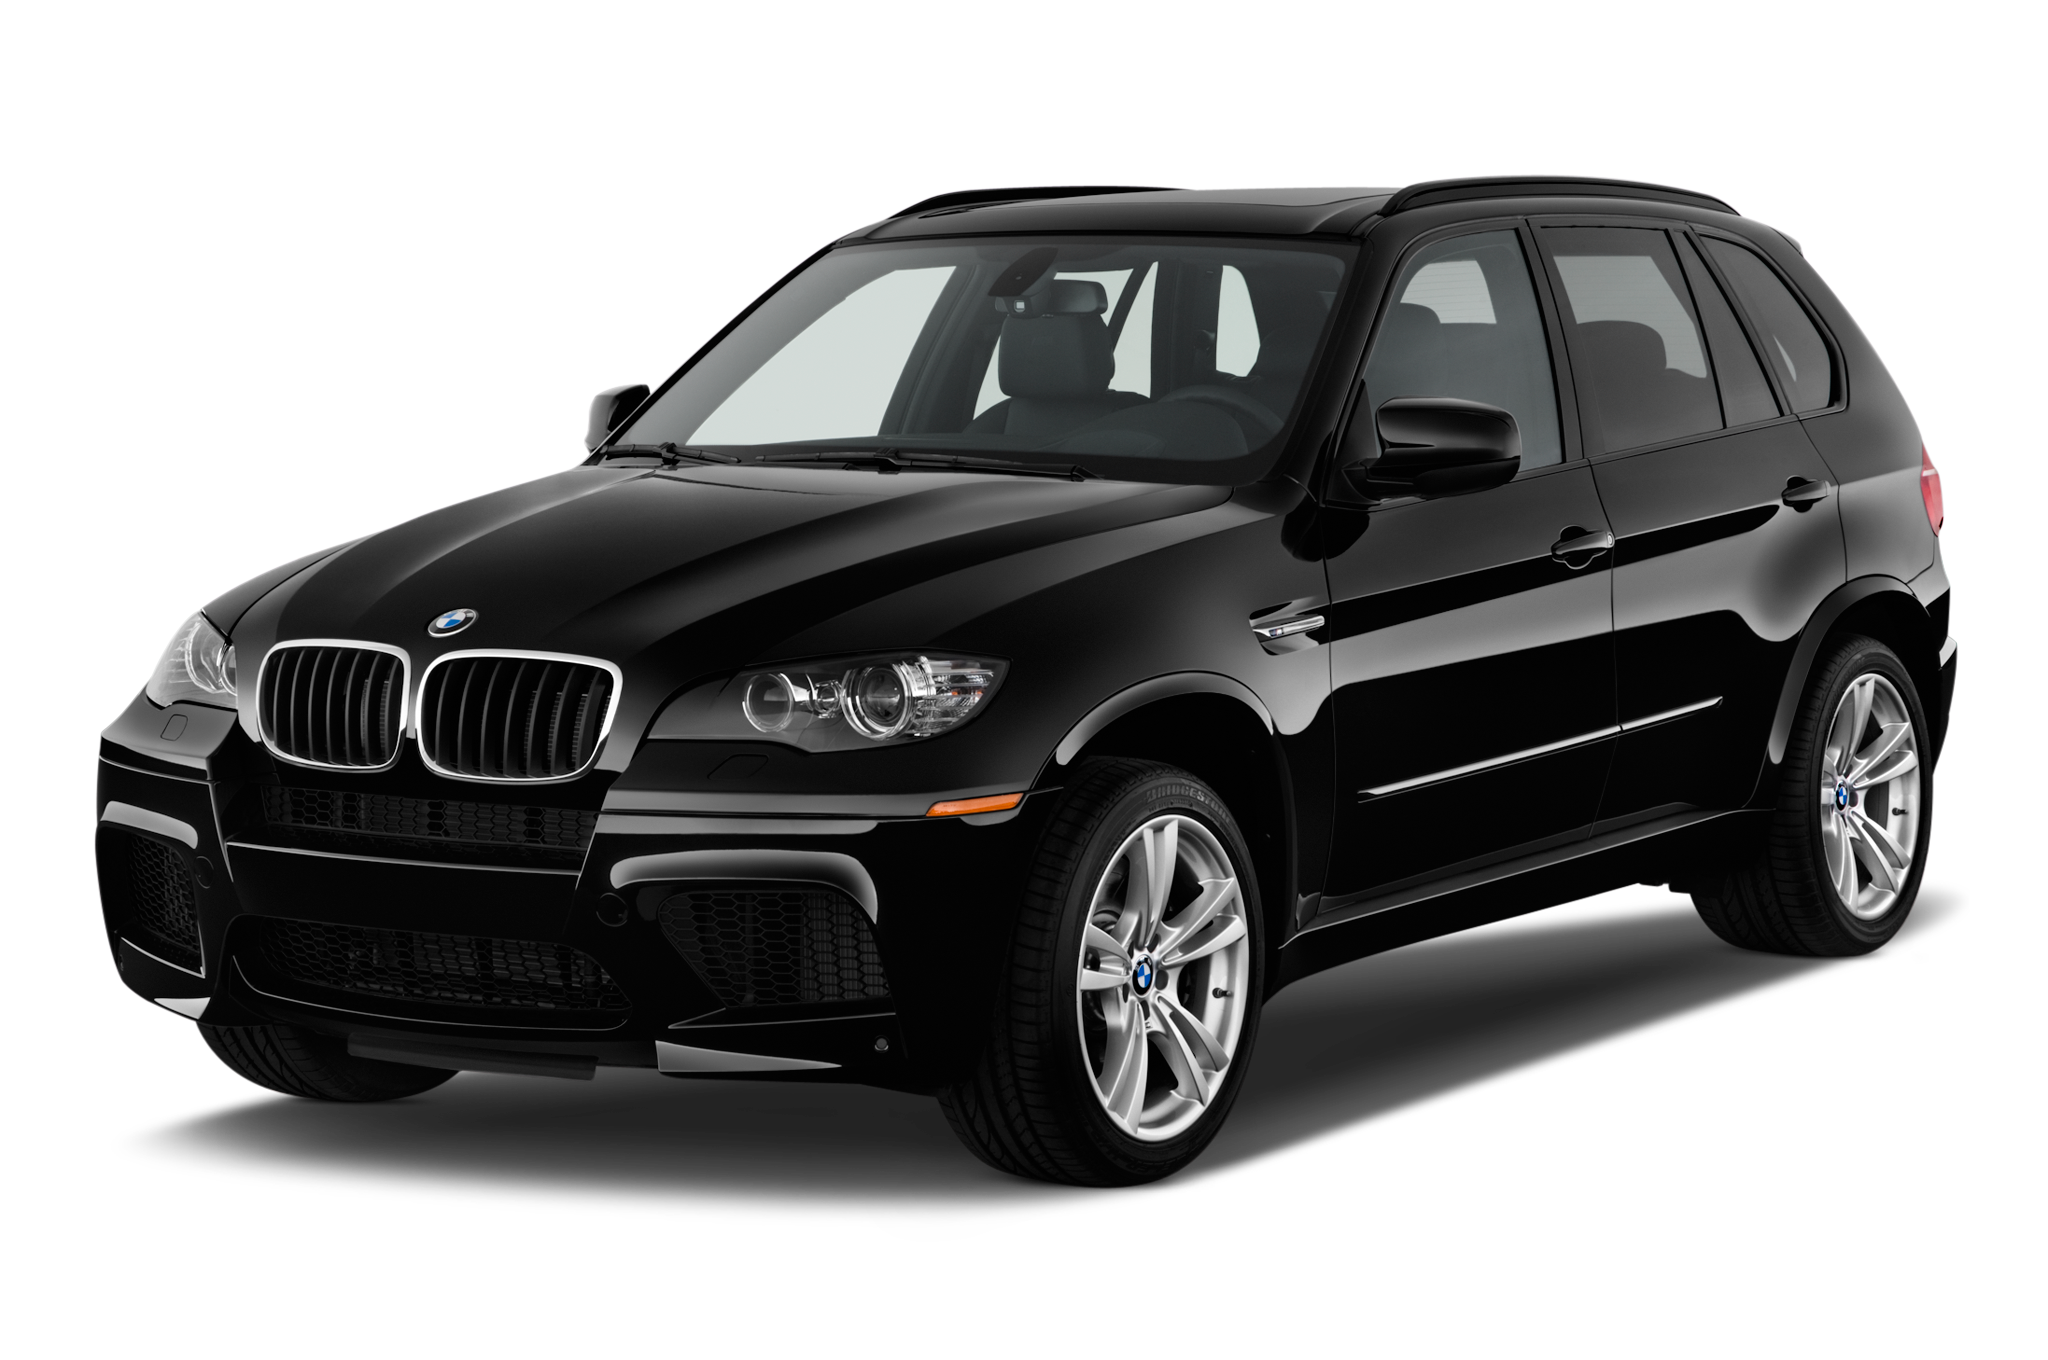 2010 Bmw X5 Xdrive35d Bmw Luxury Crossover Suv Review Automobile Magazine